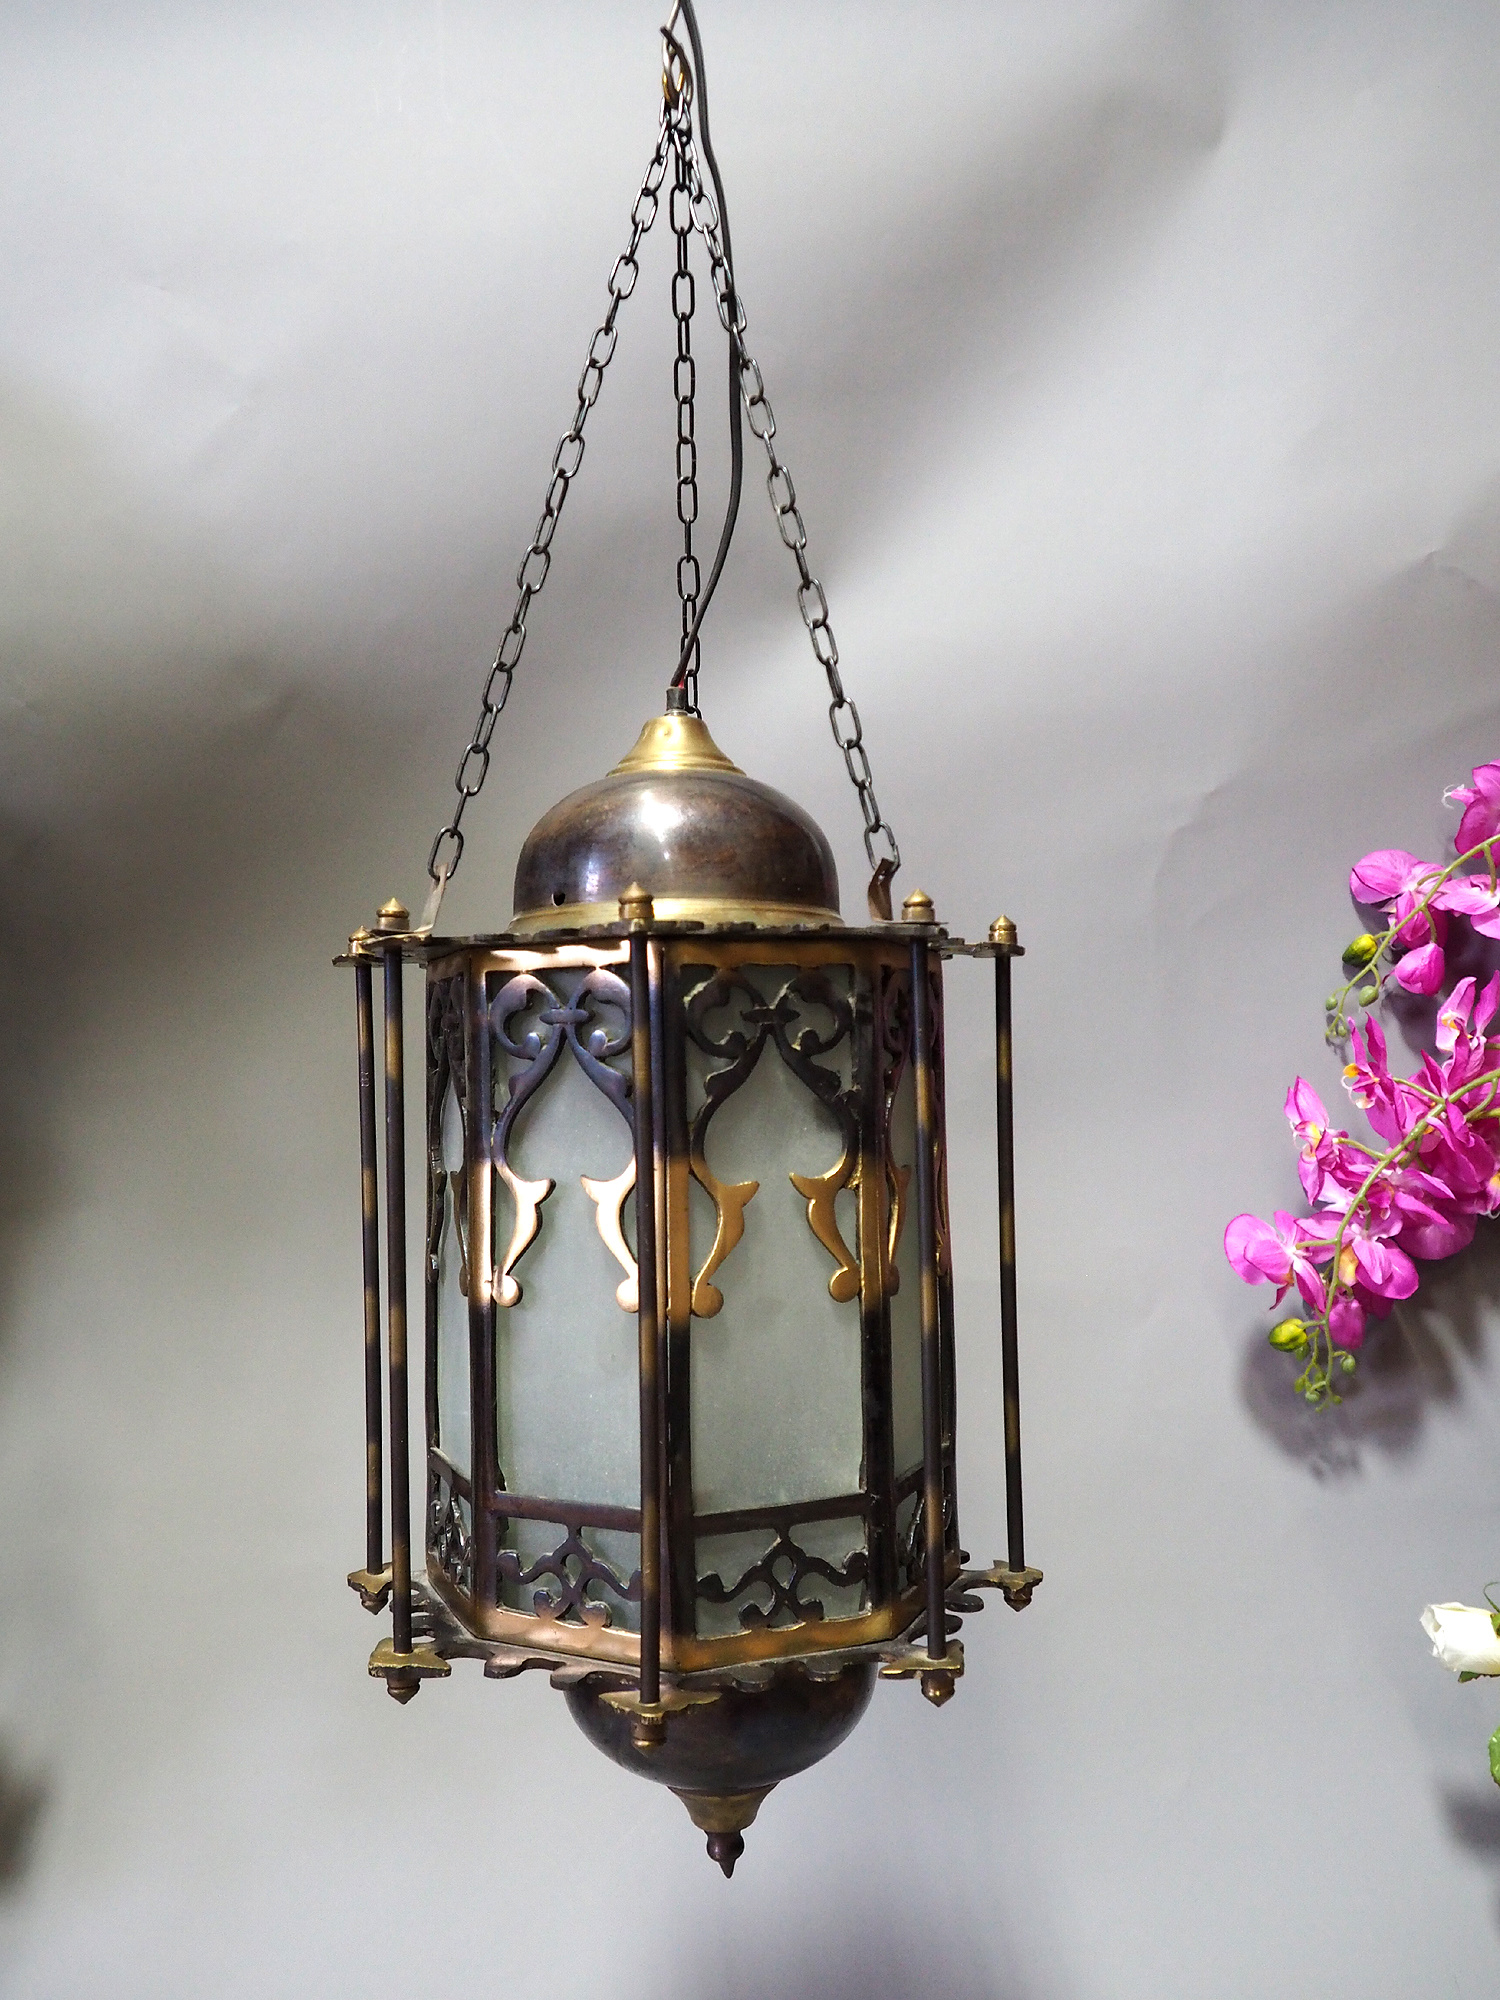 Egyptian Morocco Middle Eastern / Islamic Brass Hanging Mosque Lamp  Ceiling lamp from Afghanistan 21/B